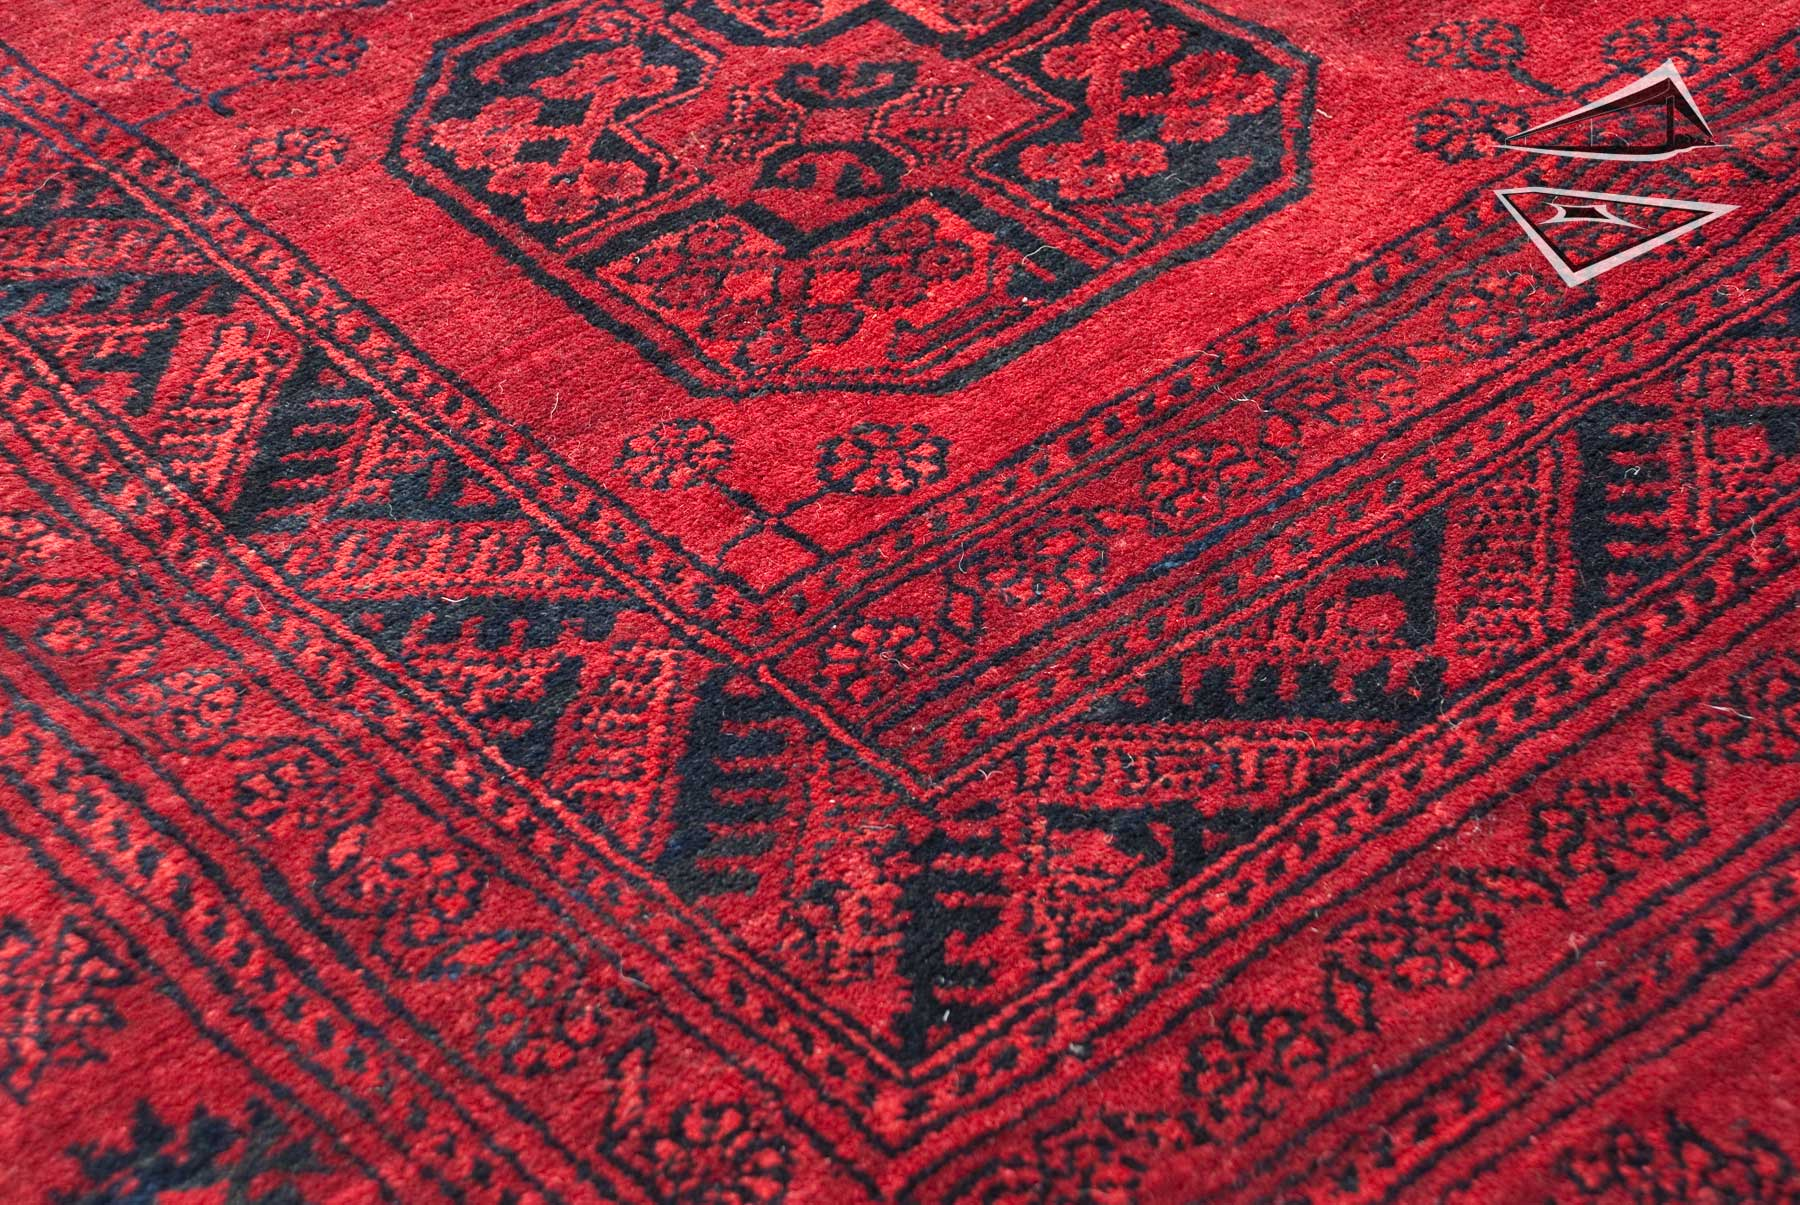 Afghan Carpet Vidalondon